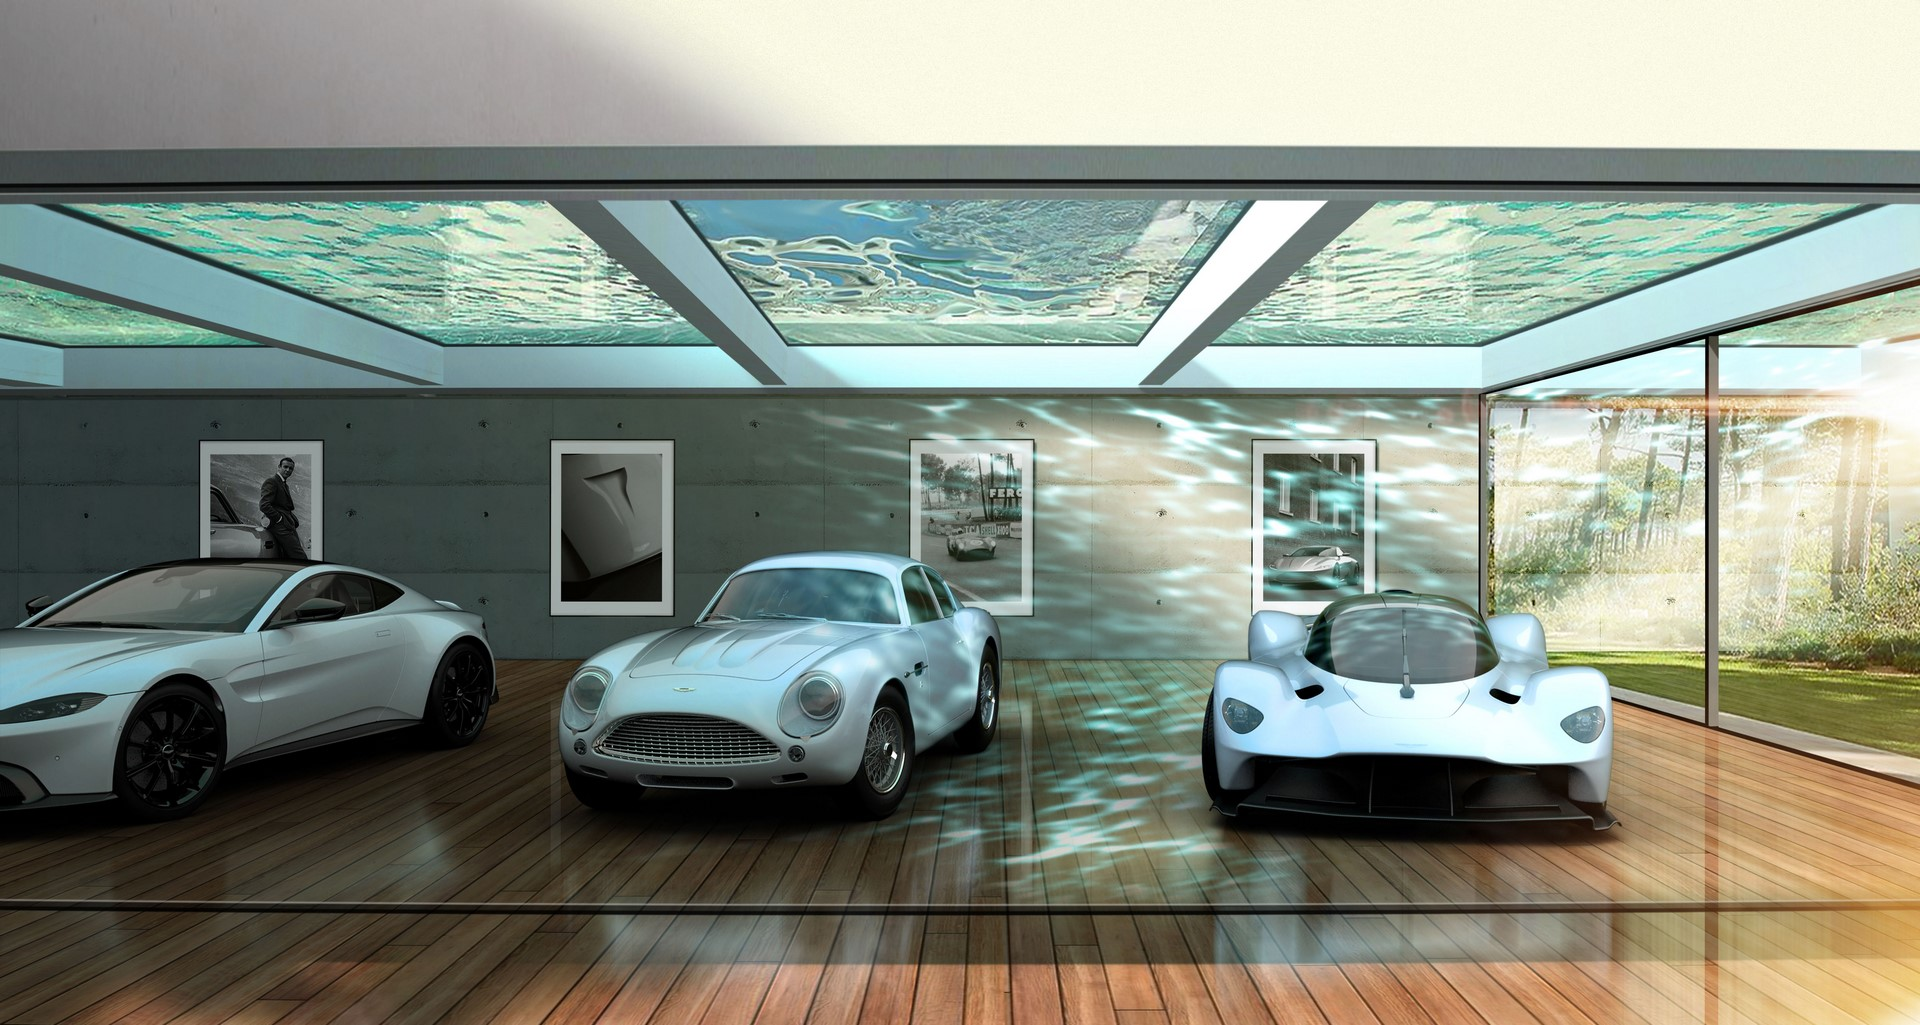 Aston-Martin-Automotive-parking-Galleries-and-Lairs-revealed-at-Pebble-Beach_01-4